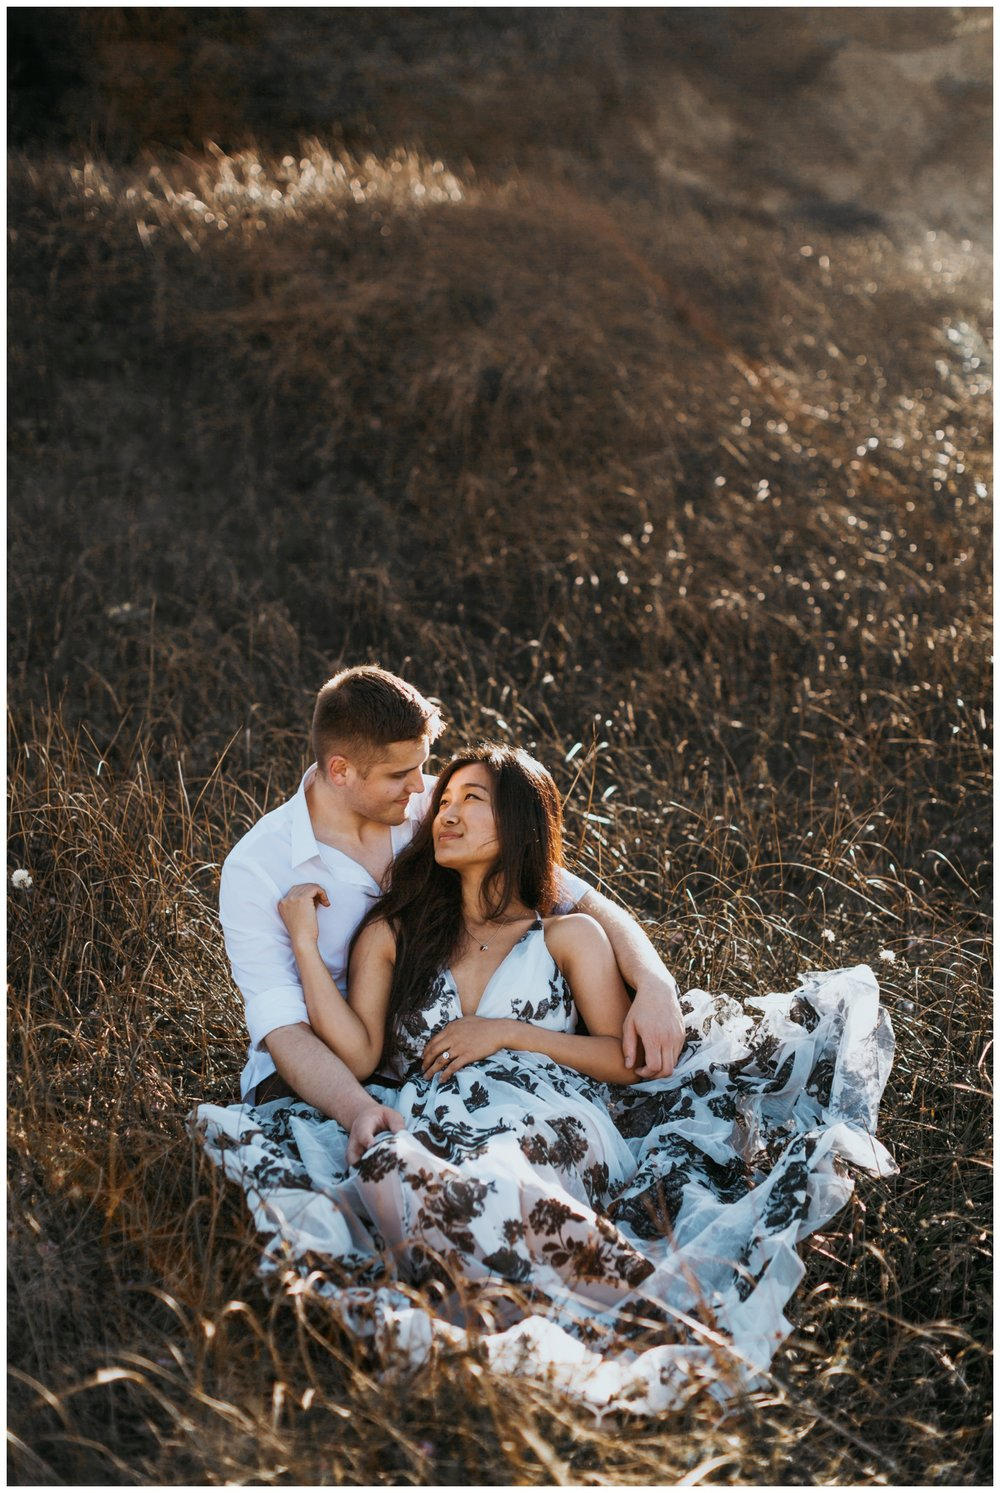 cape_kiwanda_beach_engagement_shoot_0050.jpg